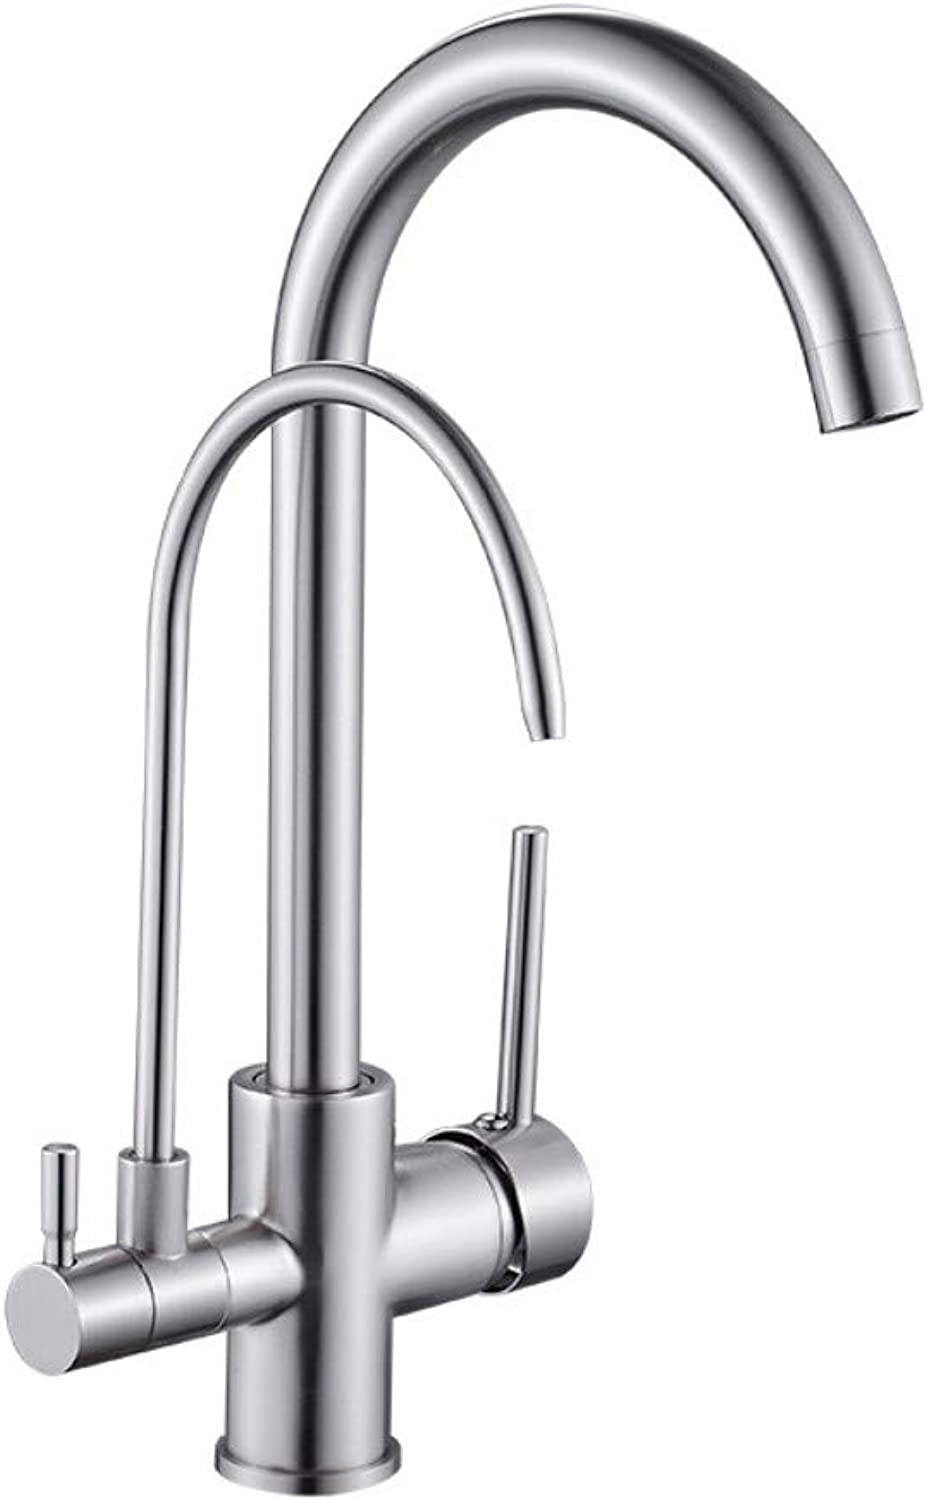 QIMEIM Kitchen Taps Sink Mixer Tap Brushed Hot and Cold Water Kitchen Water Purifier Basin Tap Sink Faucet Swivel Spout Kitchen Basin Sink Mixer Tap Kitchen Faucet